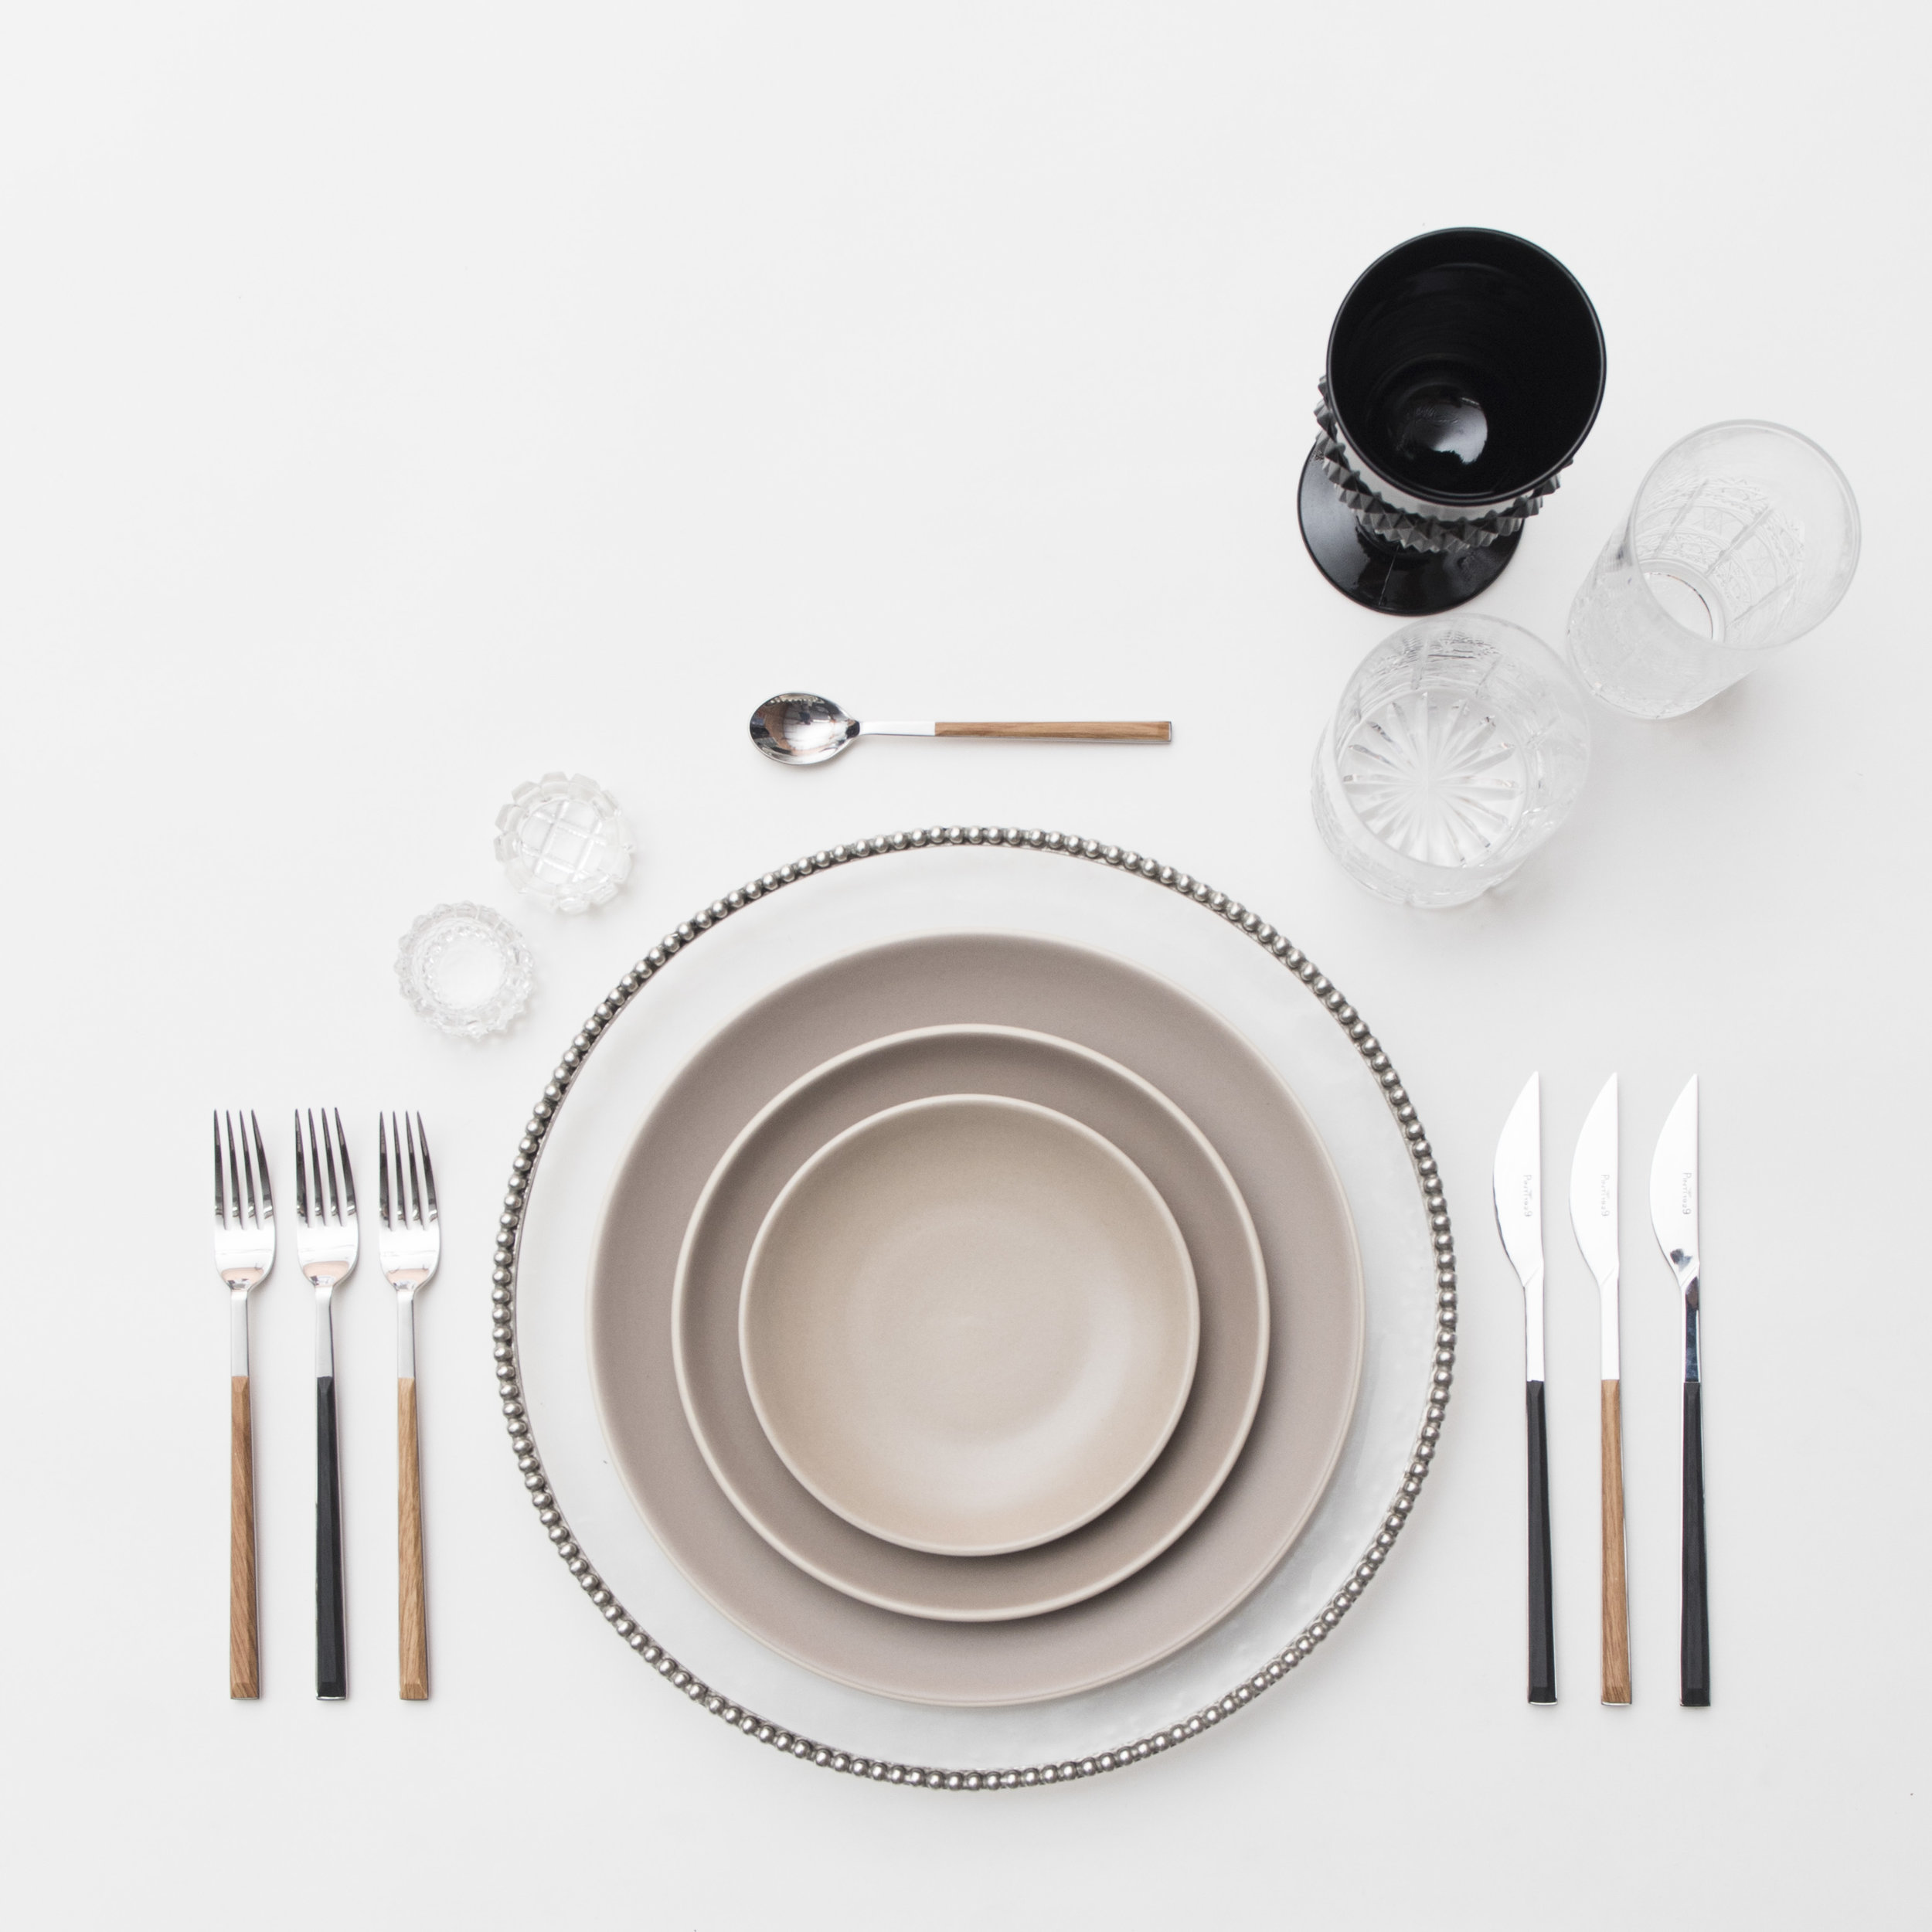 RENT: Pavé Glass Chargers in Pewter + Heath Ceramics in French Grey + Danish Flatware in Ebony/Teak + Black Vintage Goblets + Czech Crystal Stemware + Antique Crystal Salt Cellars